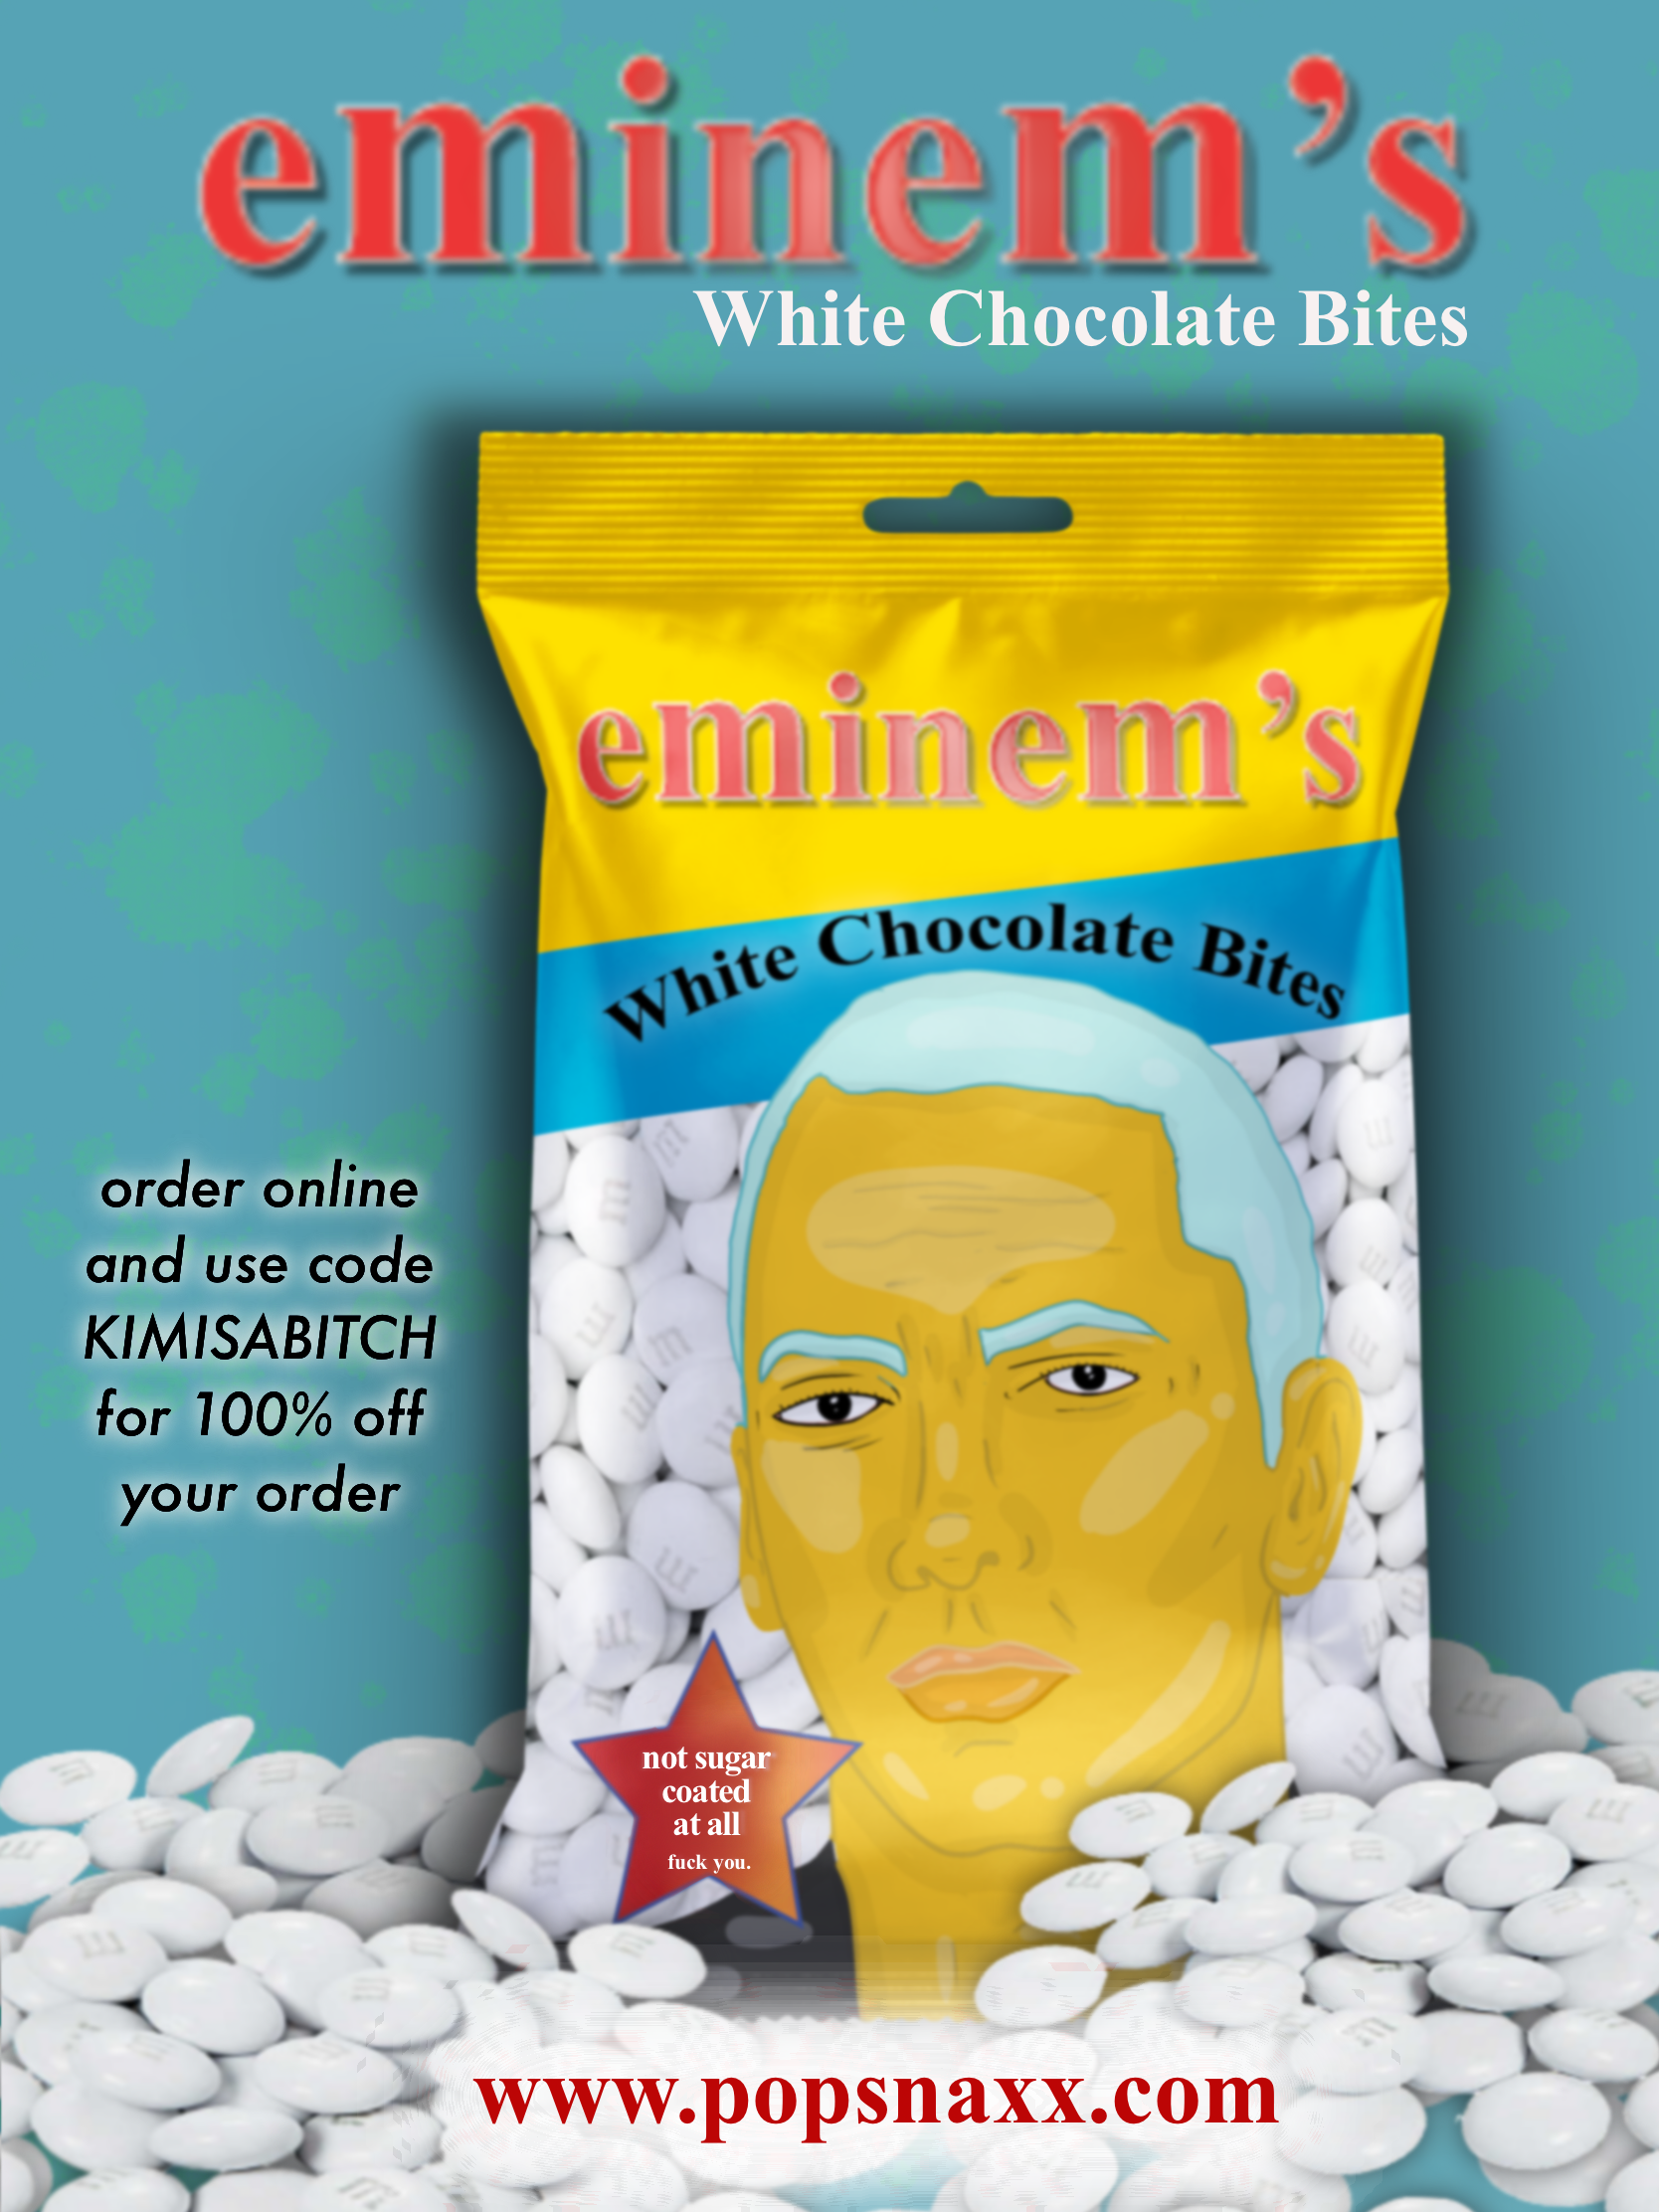 eminem's white chocolate bites